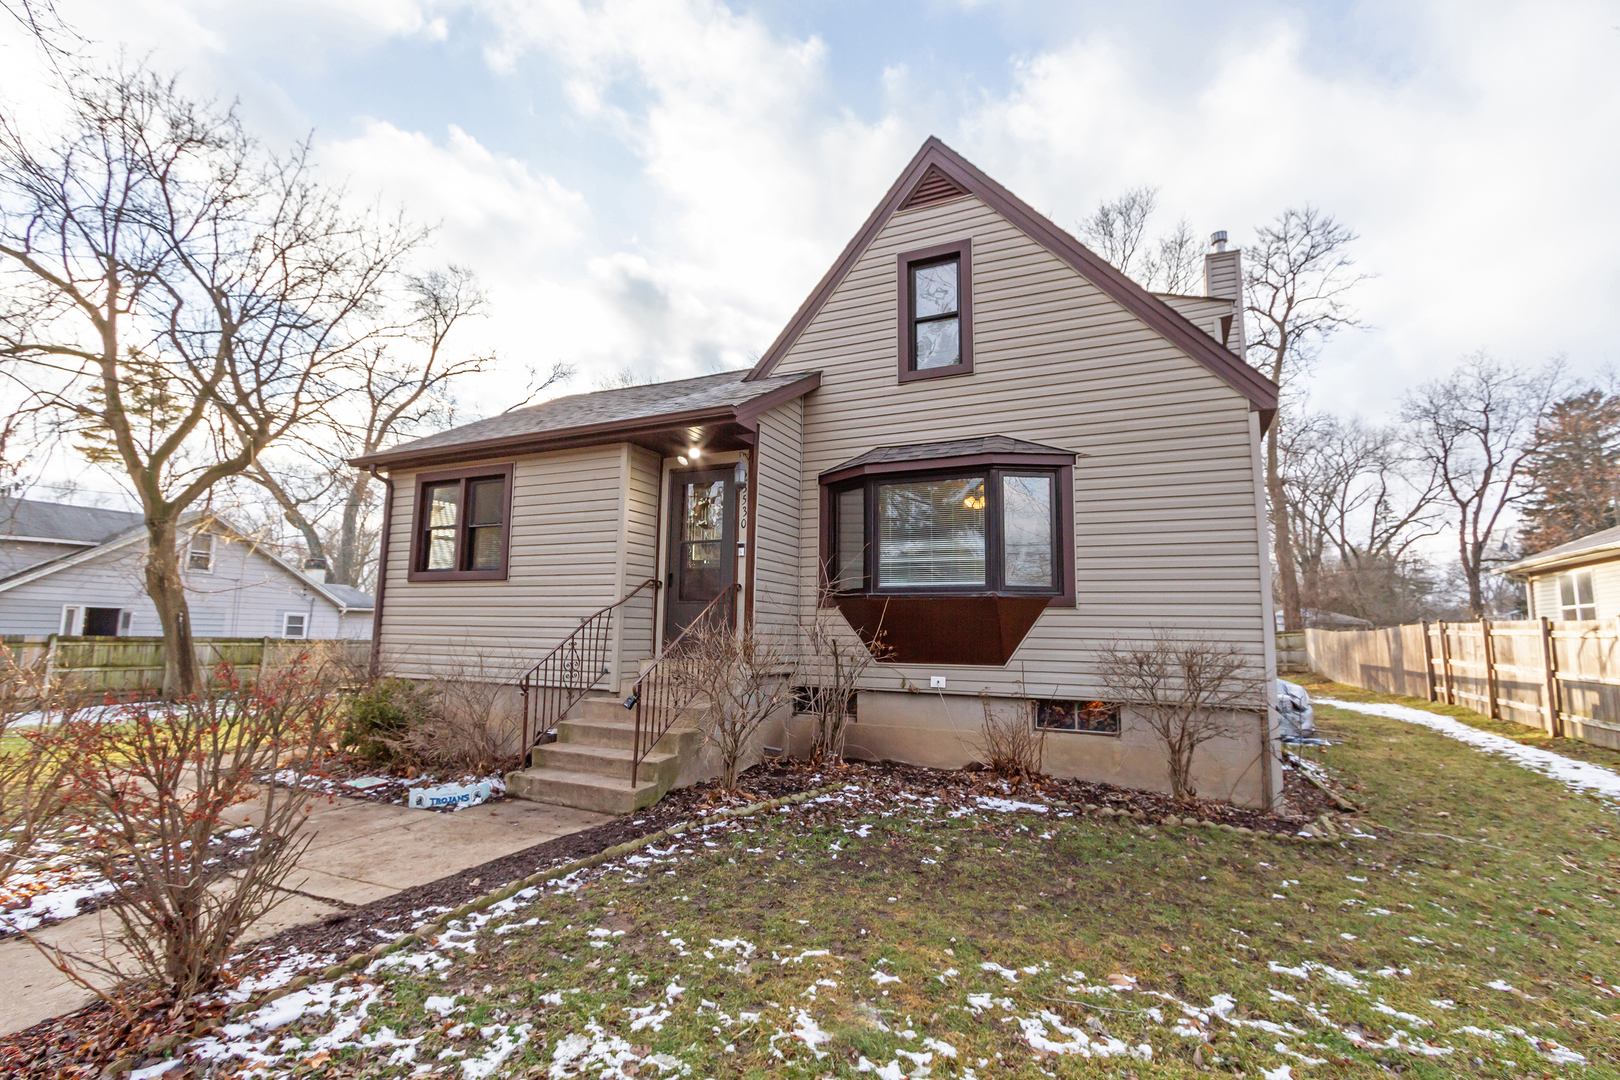 Photo for 23530 N River Street, Cary, IL 60013 (MLS # 10613556)